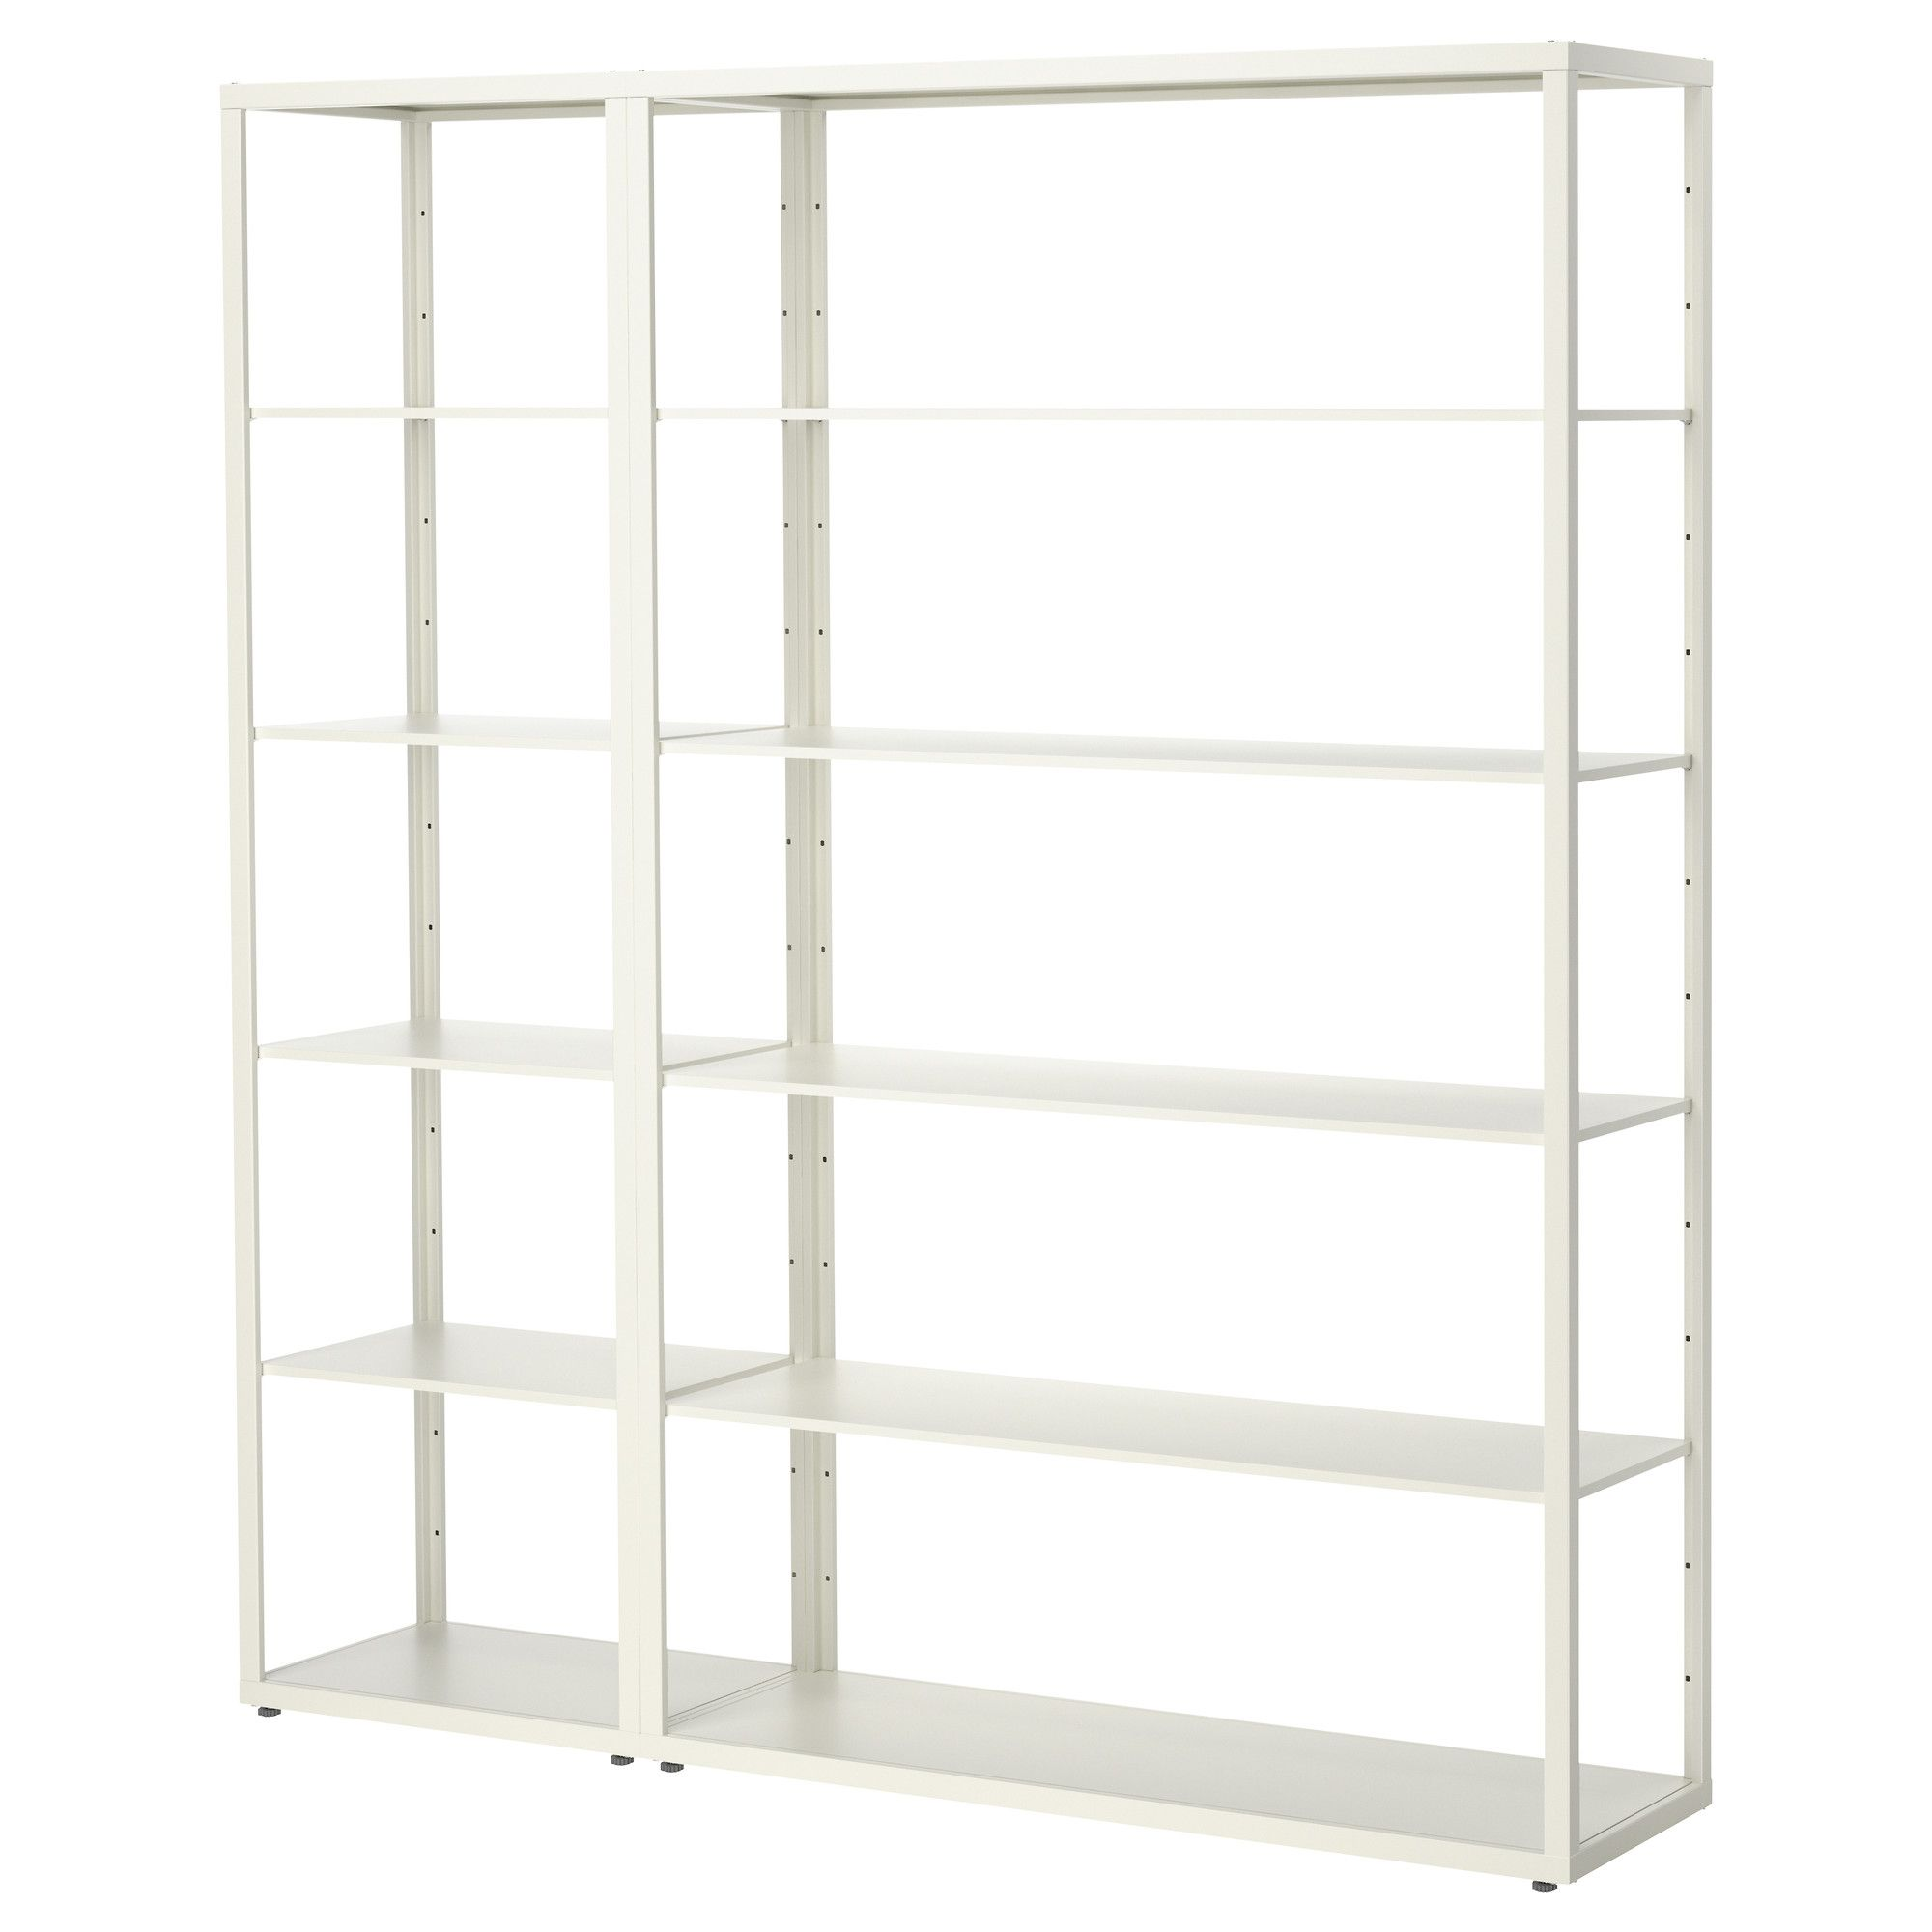 IKEA - FJLKINGE, Shelving unit, The long, slender shelves give the shelving  unit